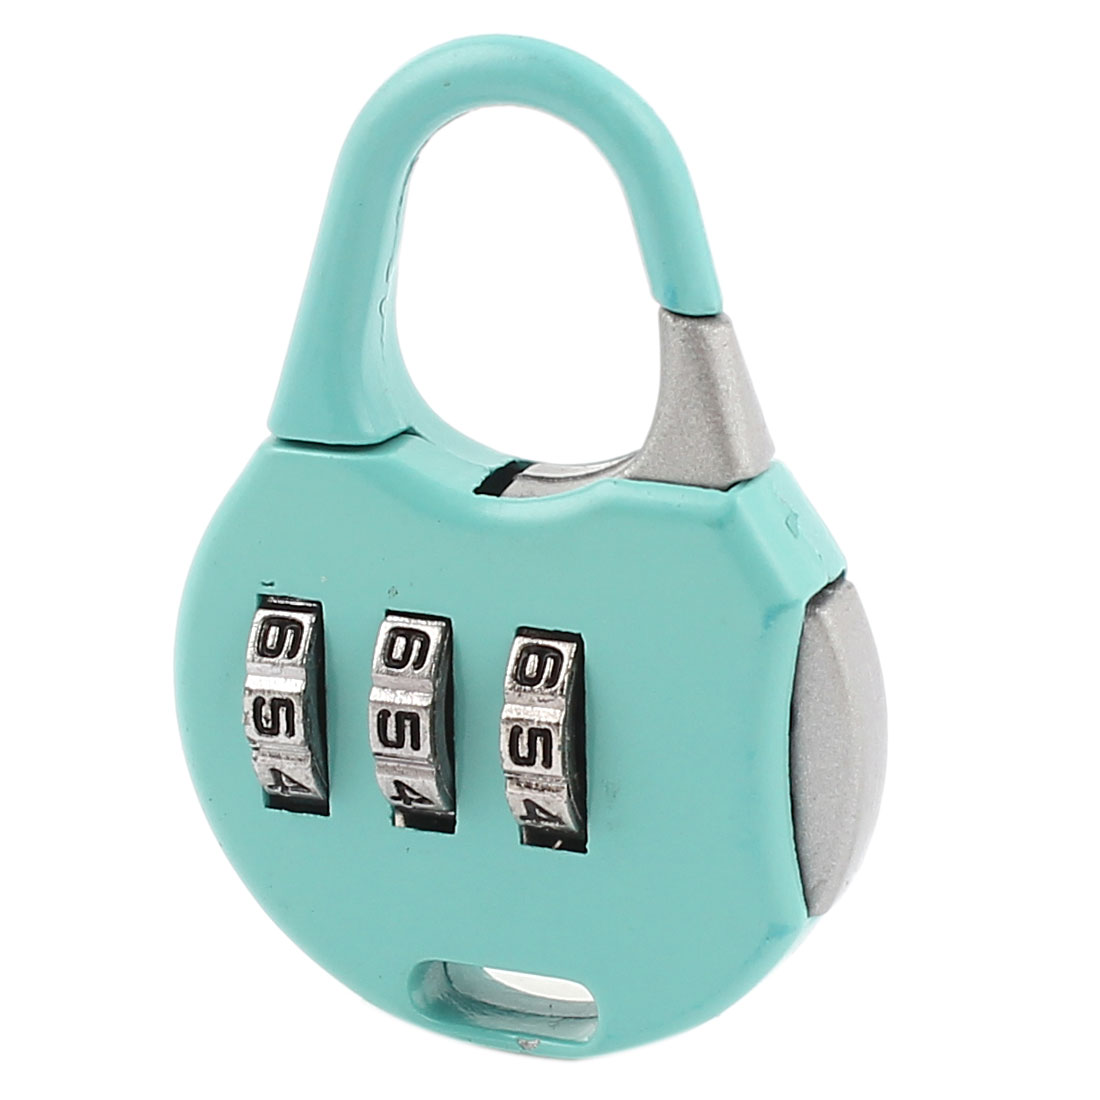 Cyan 3 Digits Security Password Combination Coded Luggage Padlock Lock